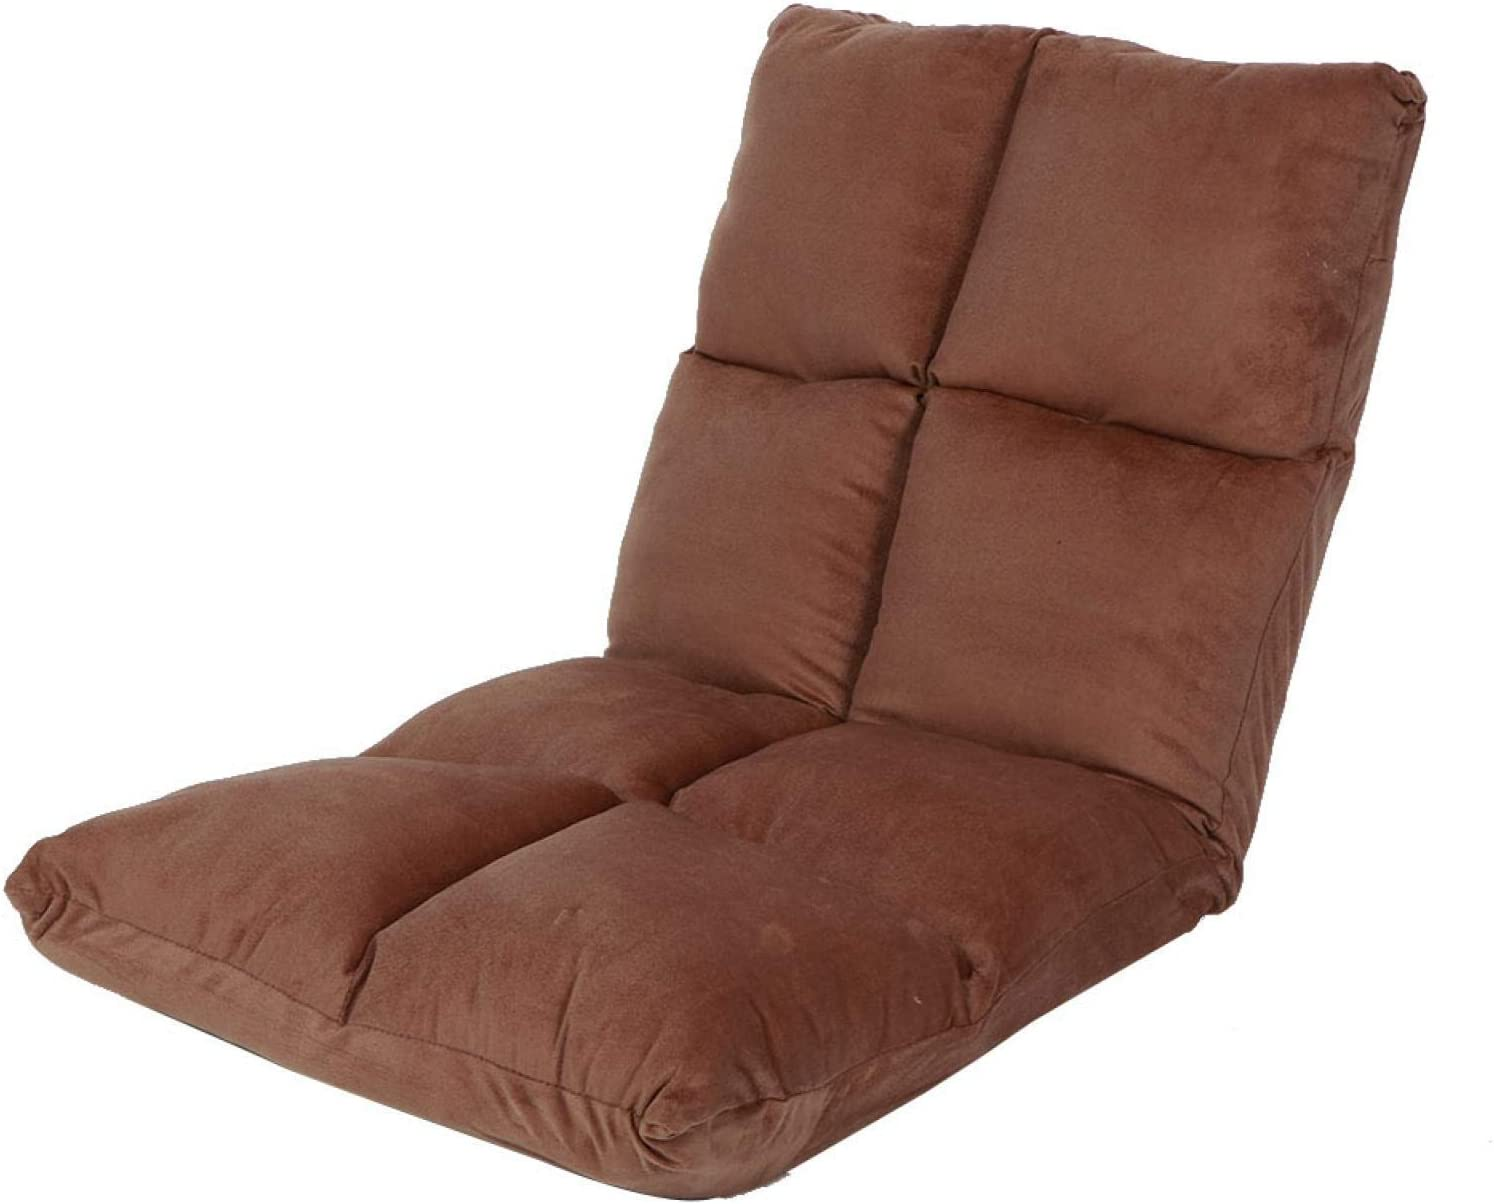 Ladieshow Max 69% Dallas Mall OFF Chaise Lounges Lazy Sofa Indoor Hi Floor Lounger Chair